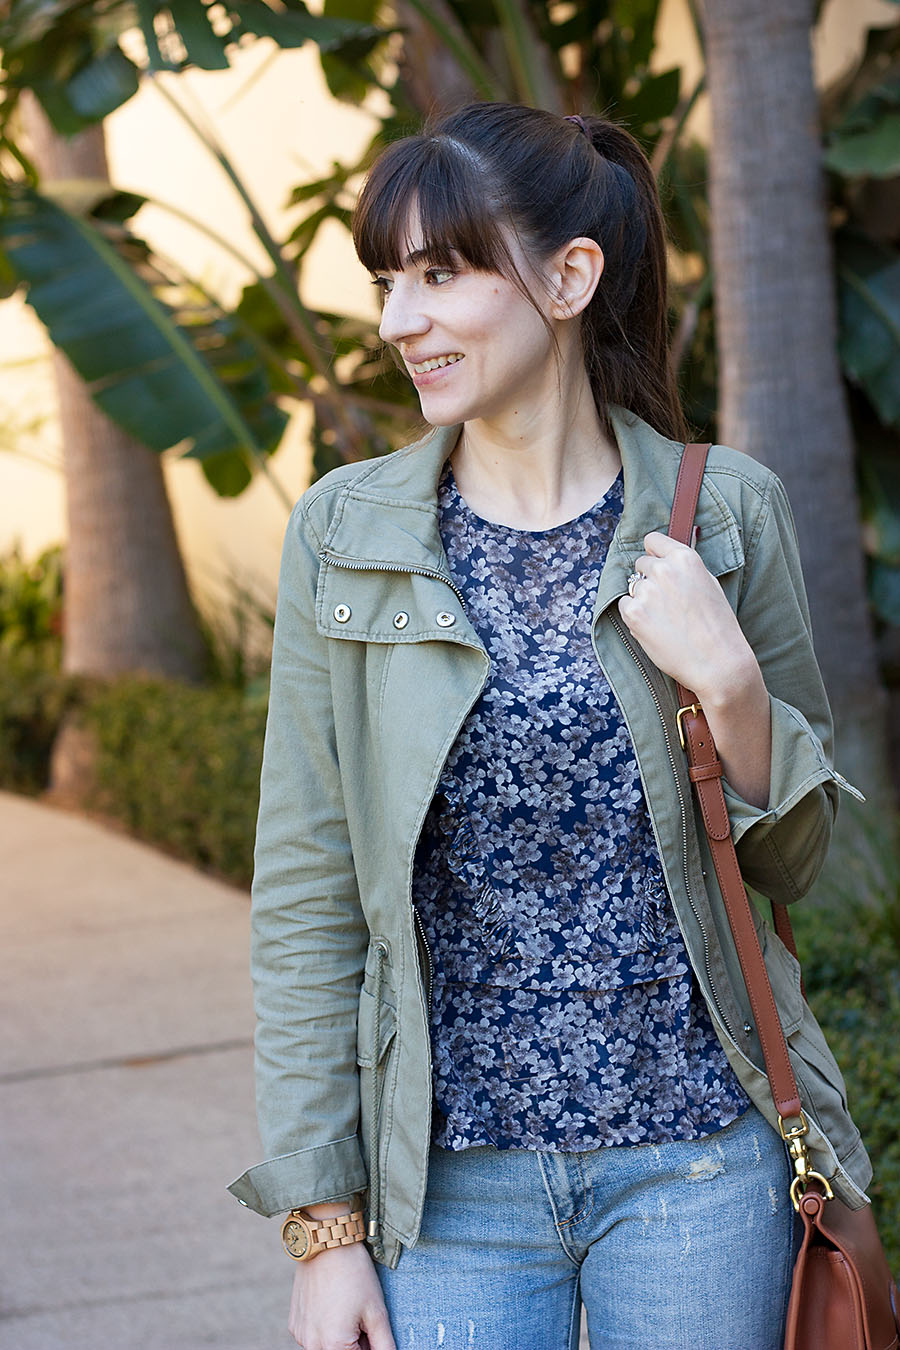 Green Cargo Jacket, Floral Top